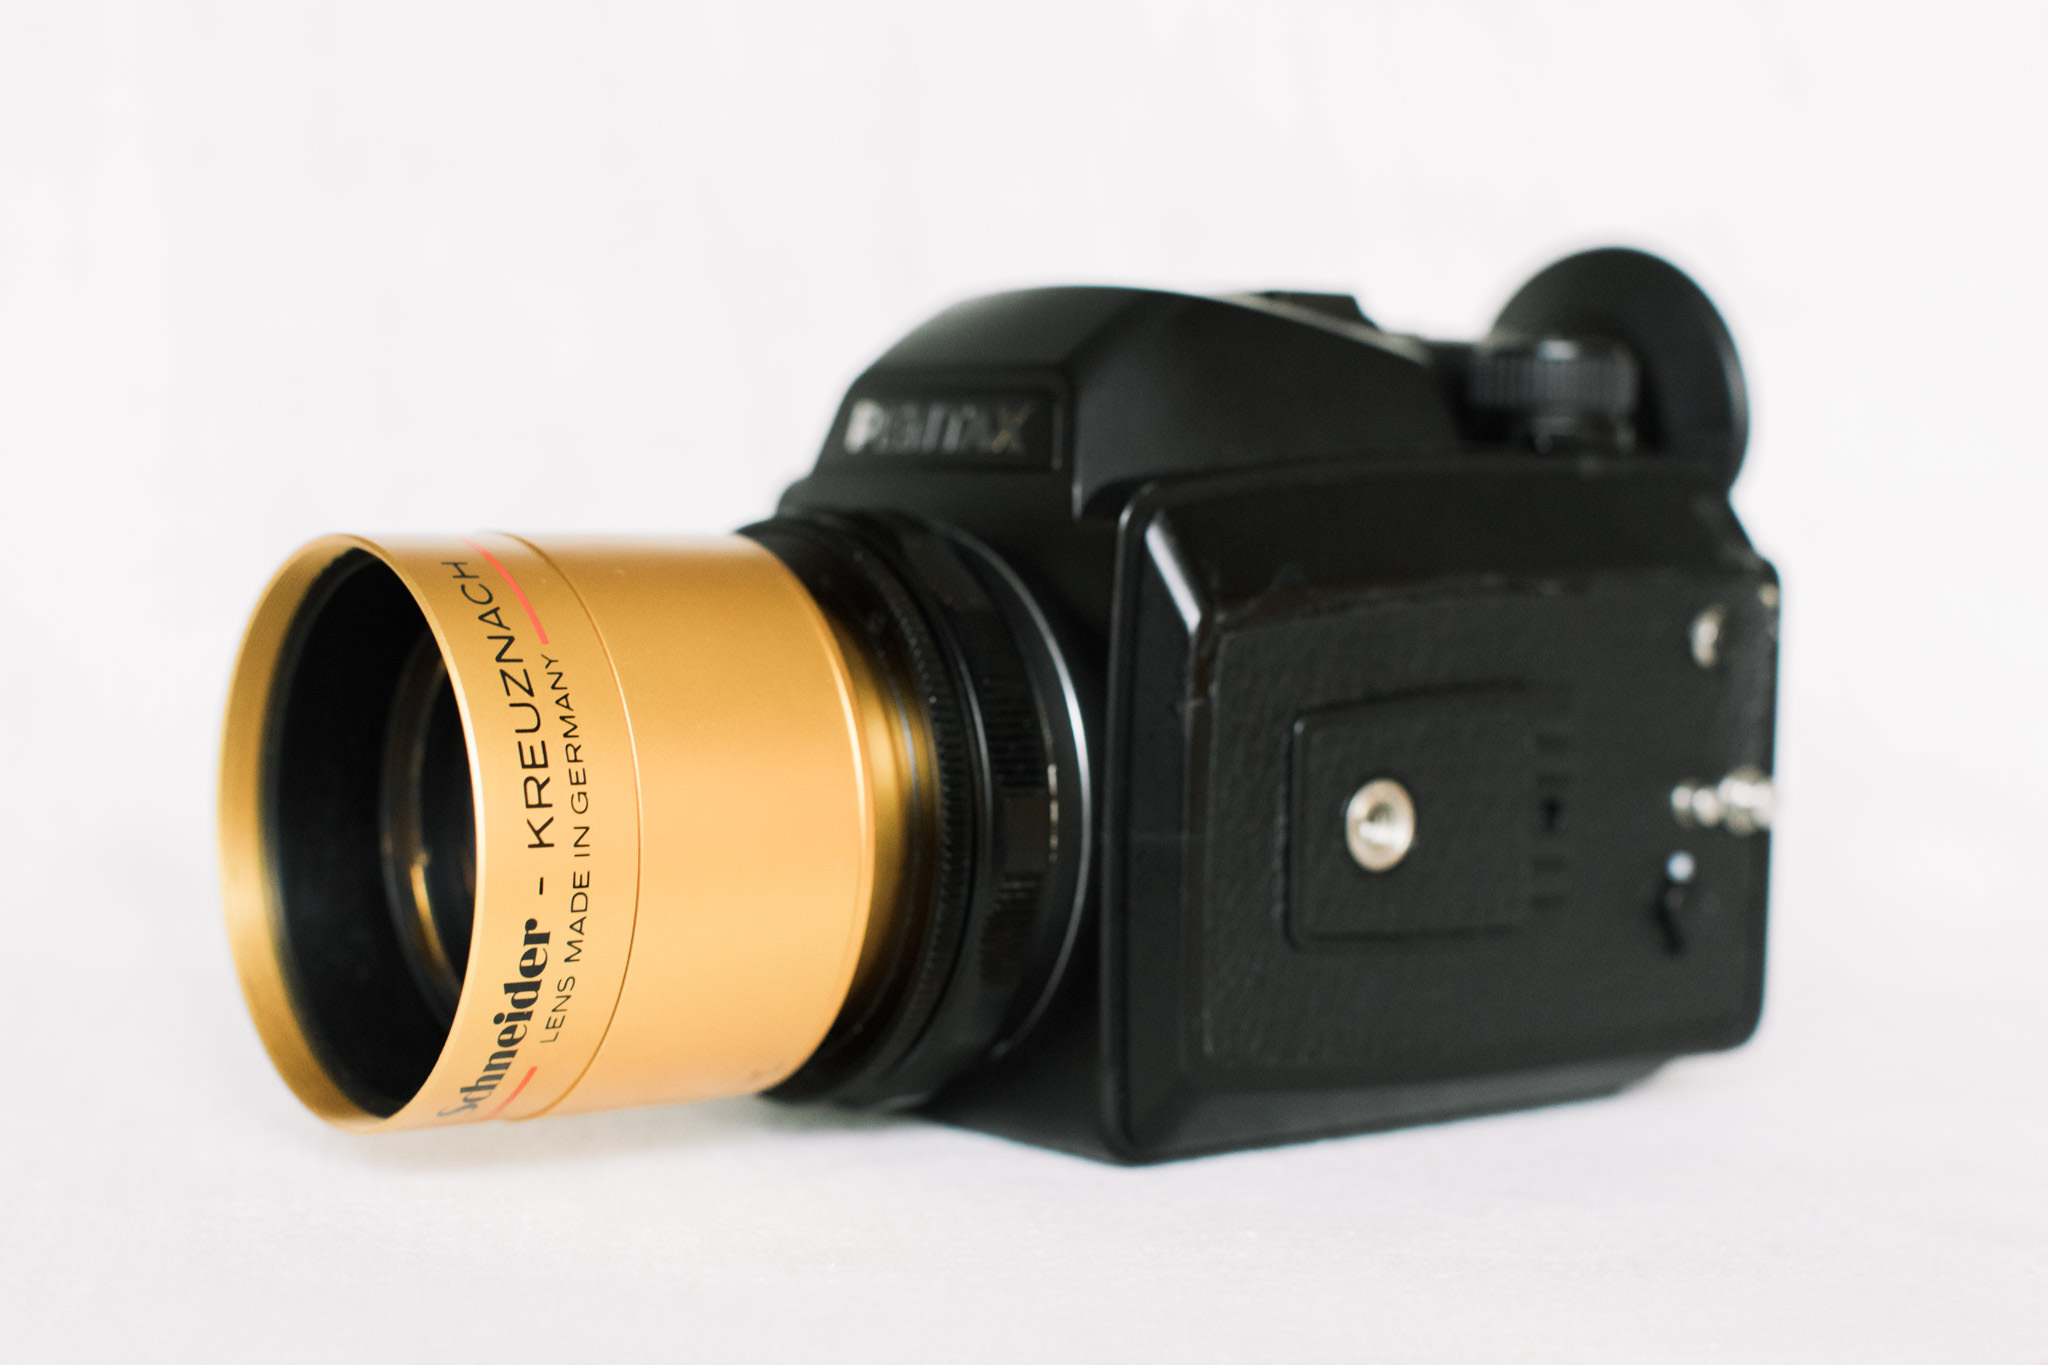 Photo of Schneider Cine-Xenon 100mm f/2 Lens Adapted for Pentax 645